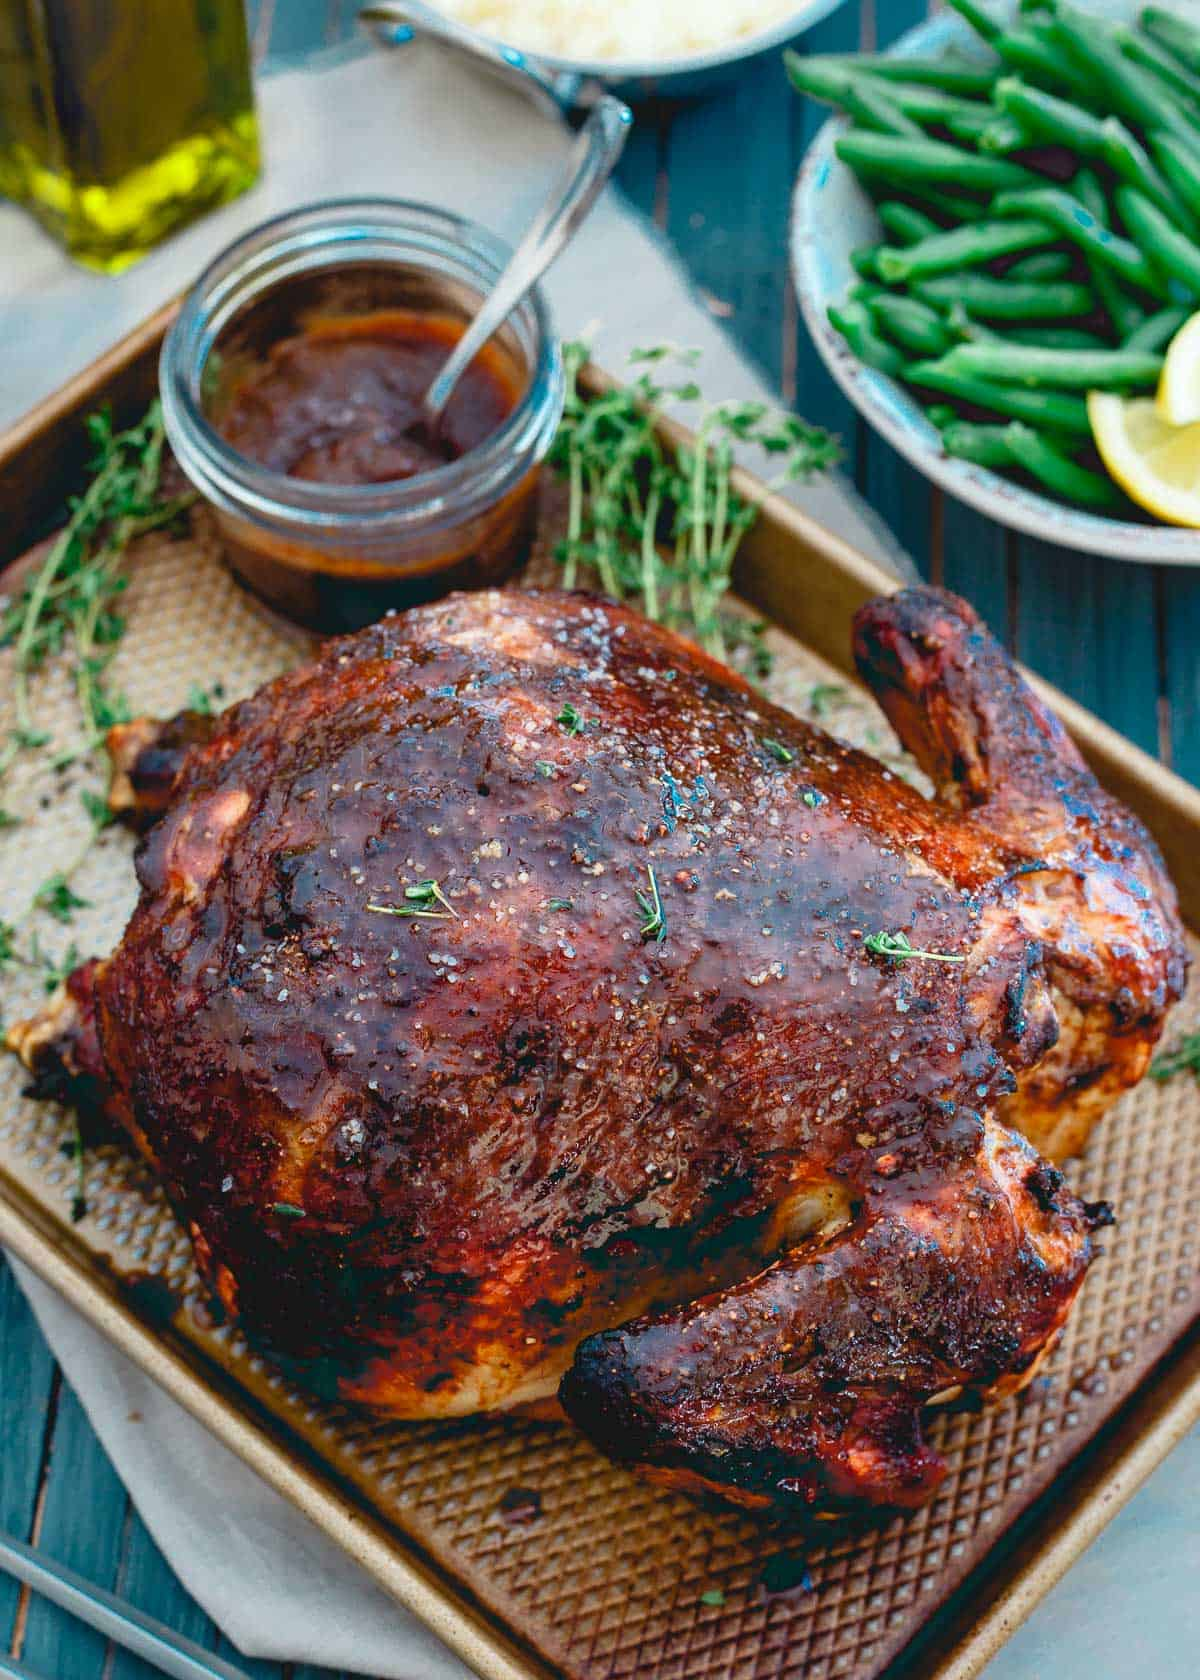 This apple butter roasted chicken is a killer combination of sweet and savory flavors. With a crispy outside and a juicy, tender inside, it's the perfect Sunday dinner!